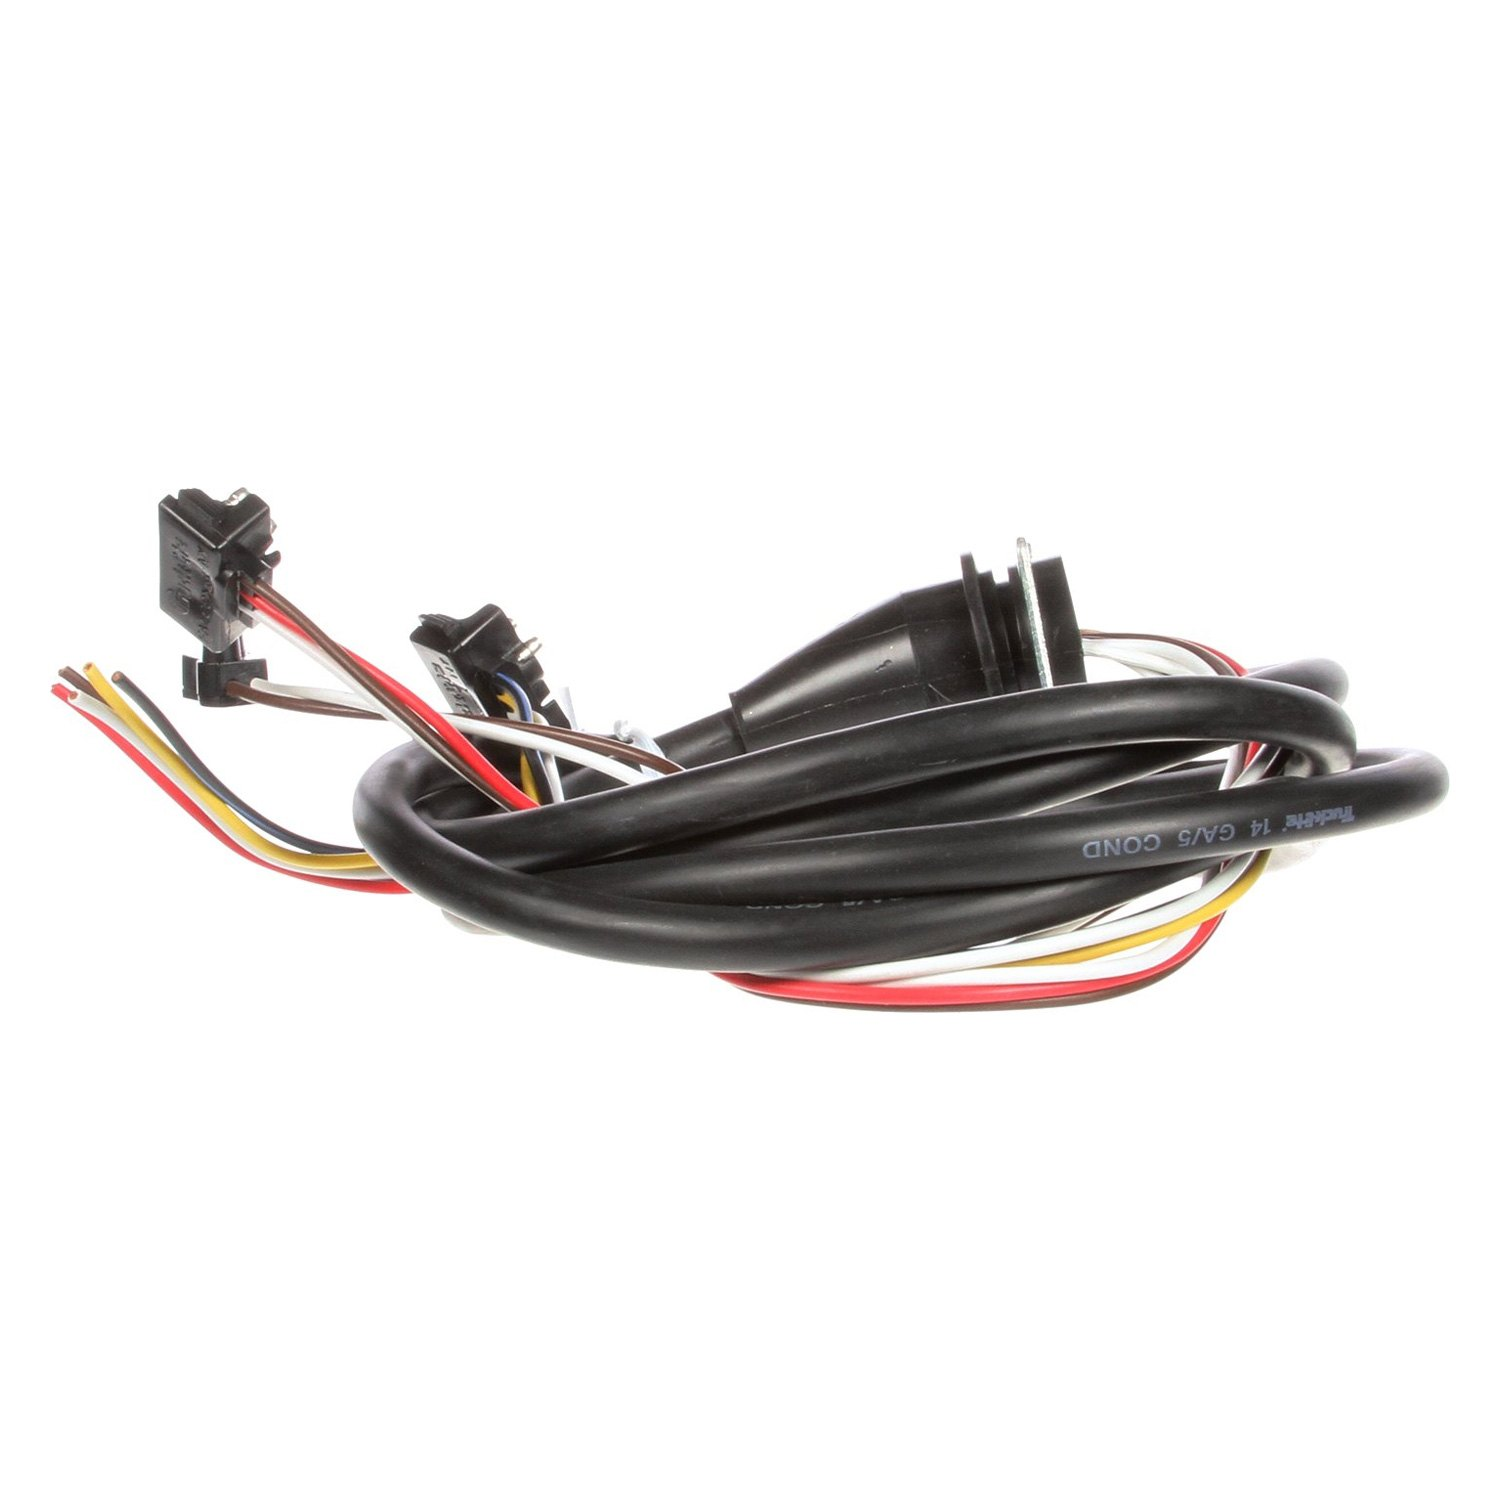 hight resolution of  side 3 plug marker clearance and stop turn tail wiring harness with stop turn tail and marker clearance breakouttruck lite 50 series 192 driver side